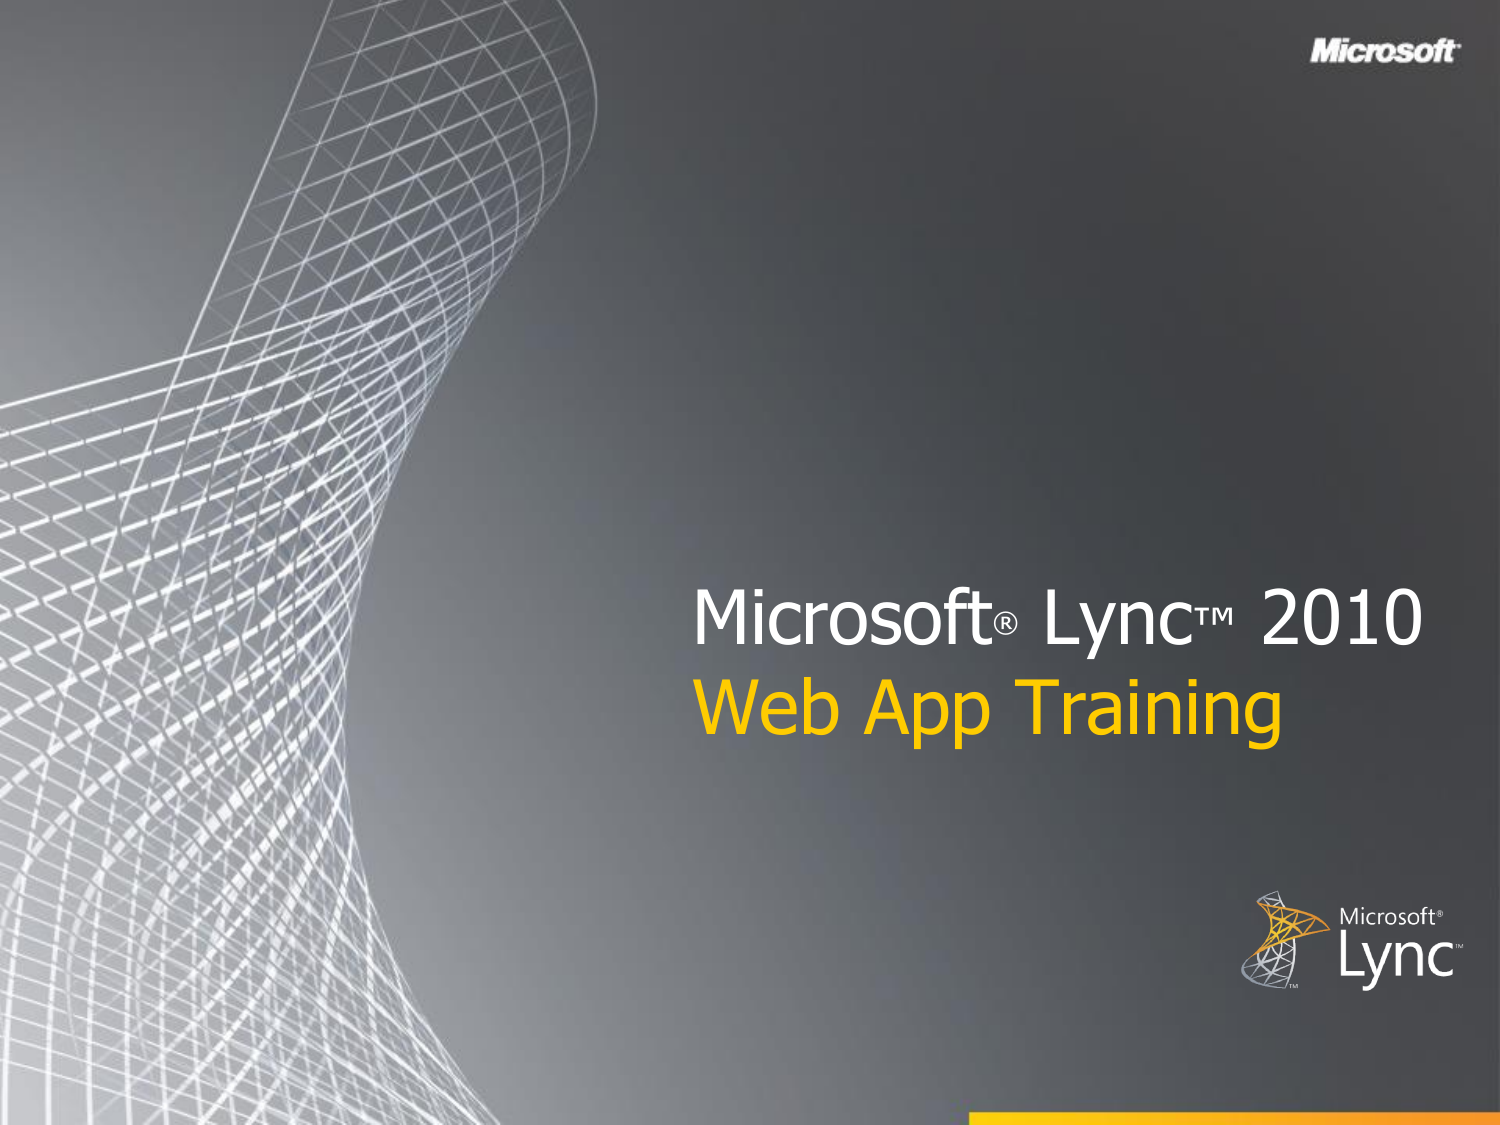 Lync Web App Training